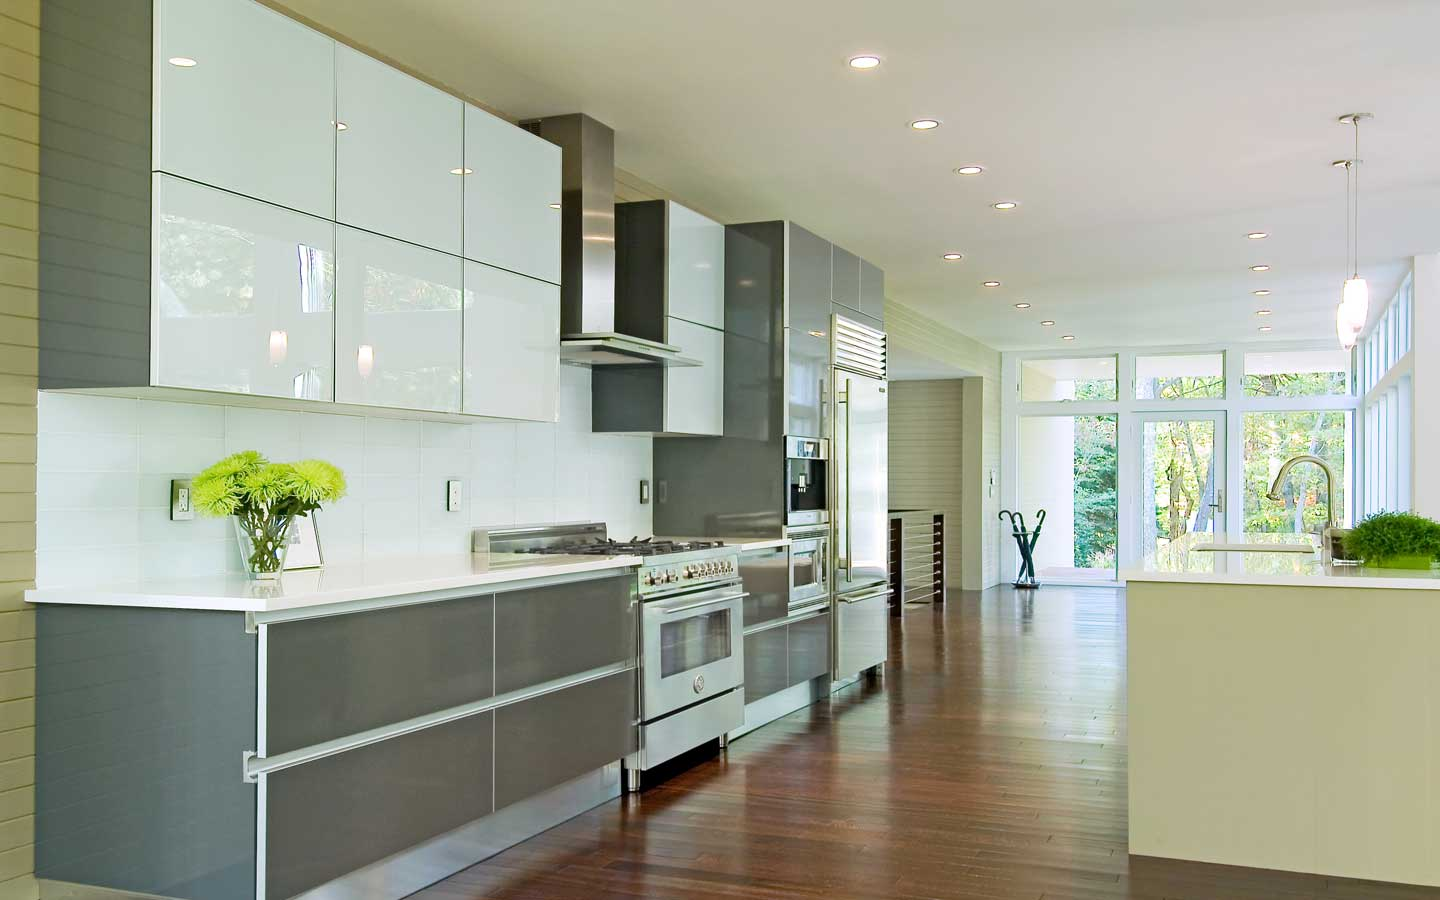 Hampton_Design_Interior_Design_East_Hampton_Kitchen_03.jpg